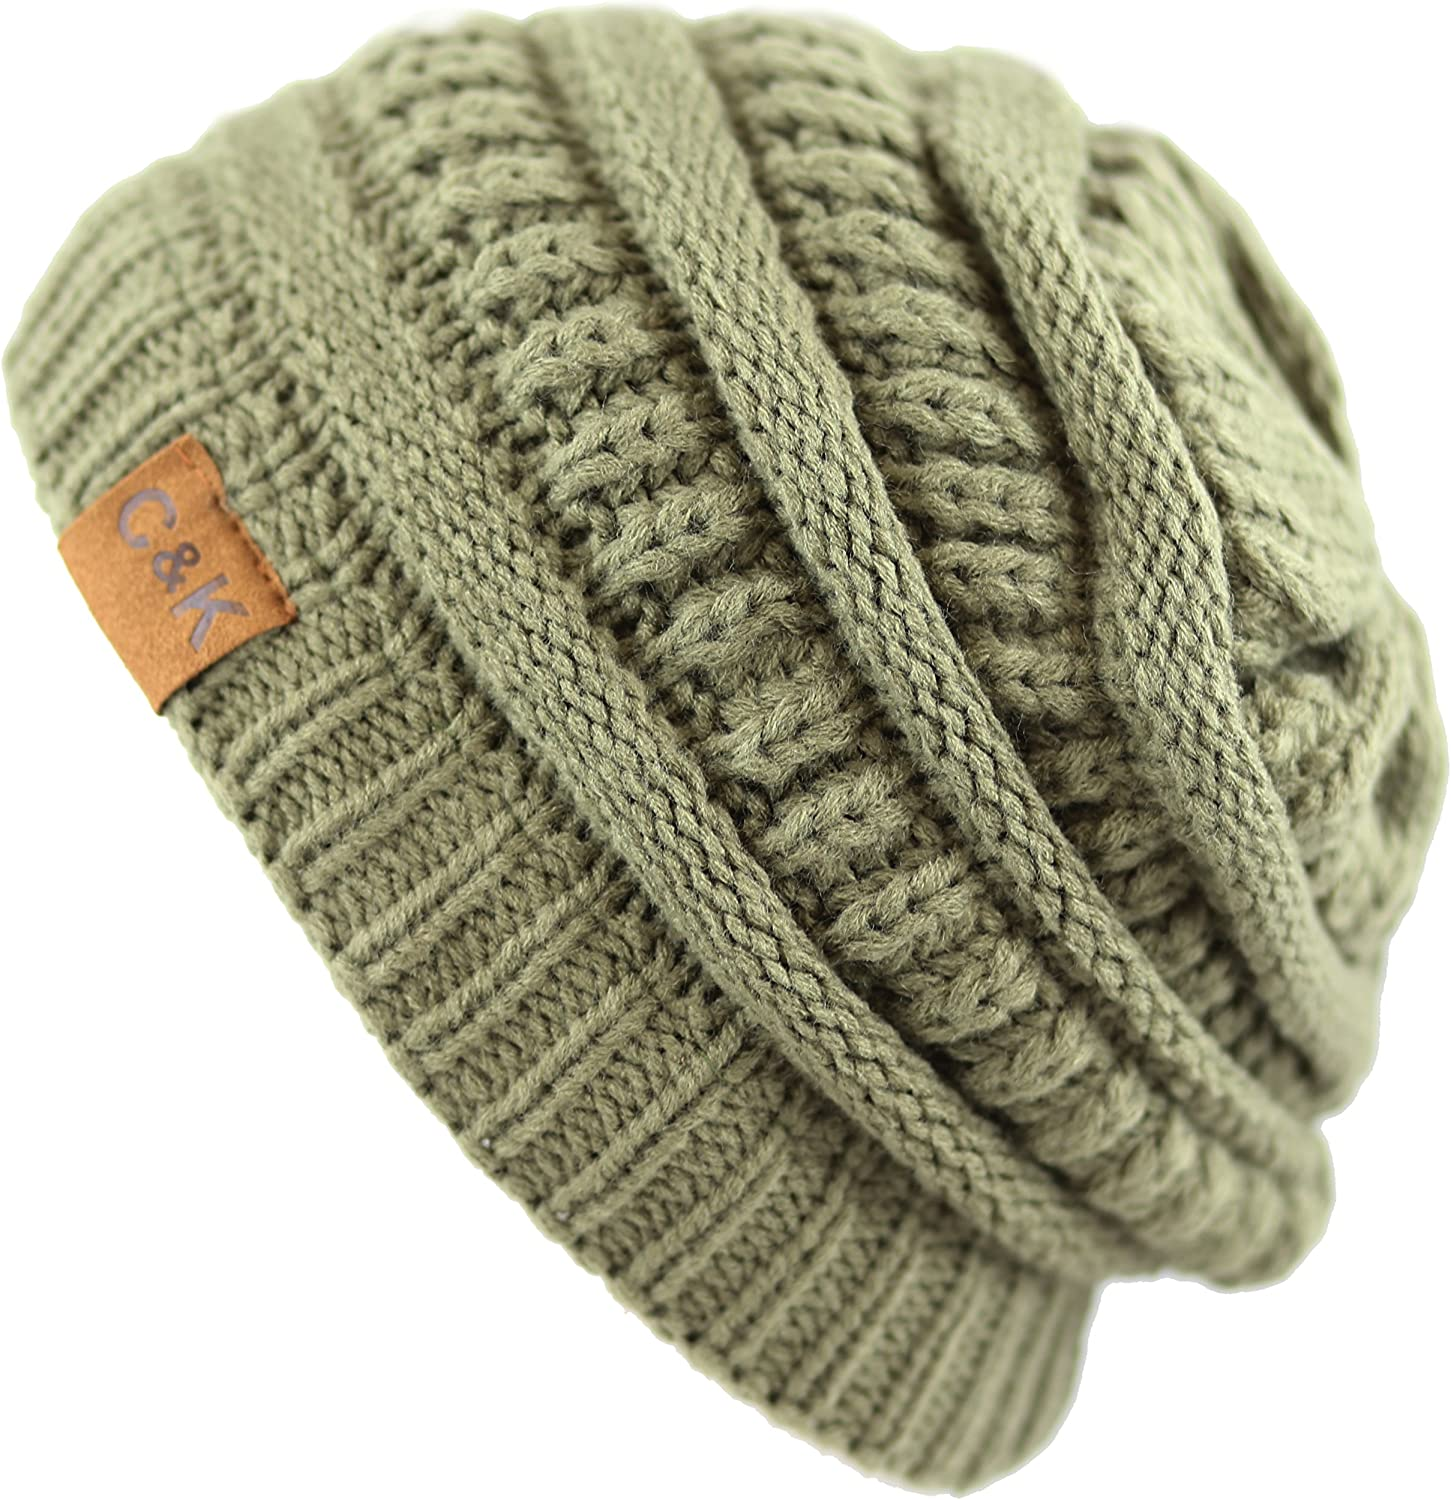 The Hat Depot Soft Stretch Cable Knit Warm Chunky Beanie Skully Winter Hat